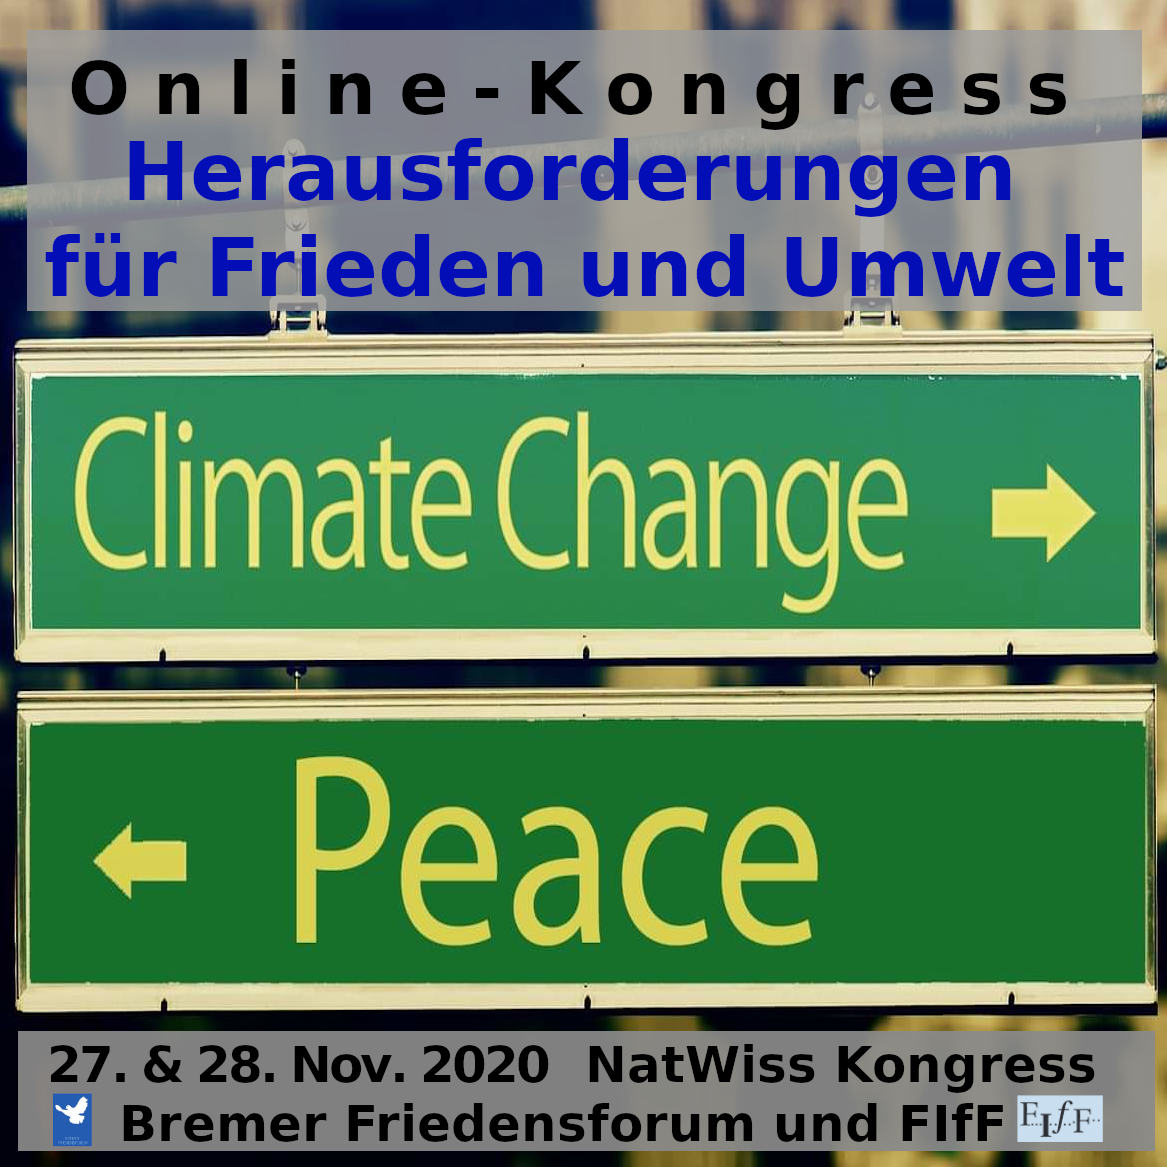 climate change peace NatWiss KOngress